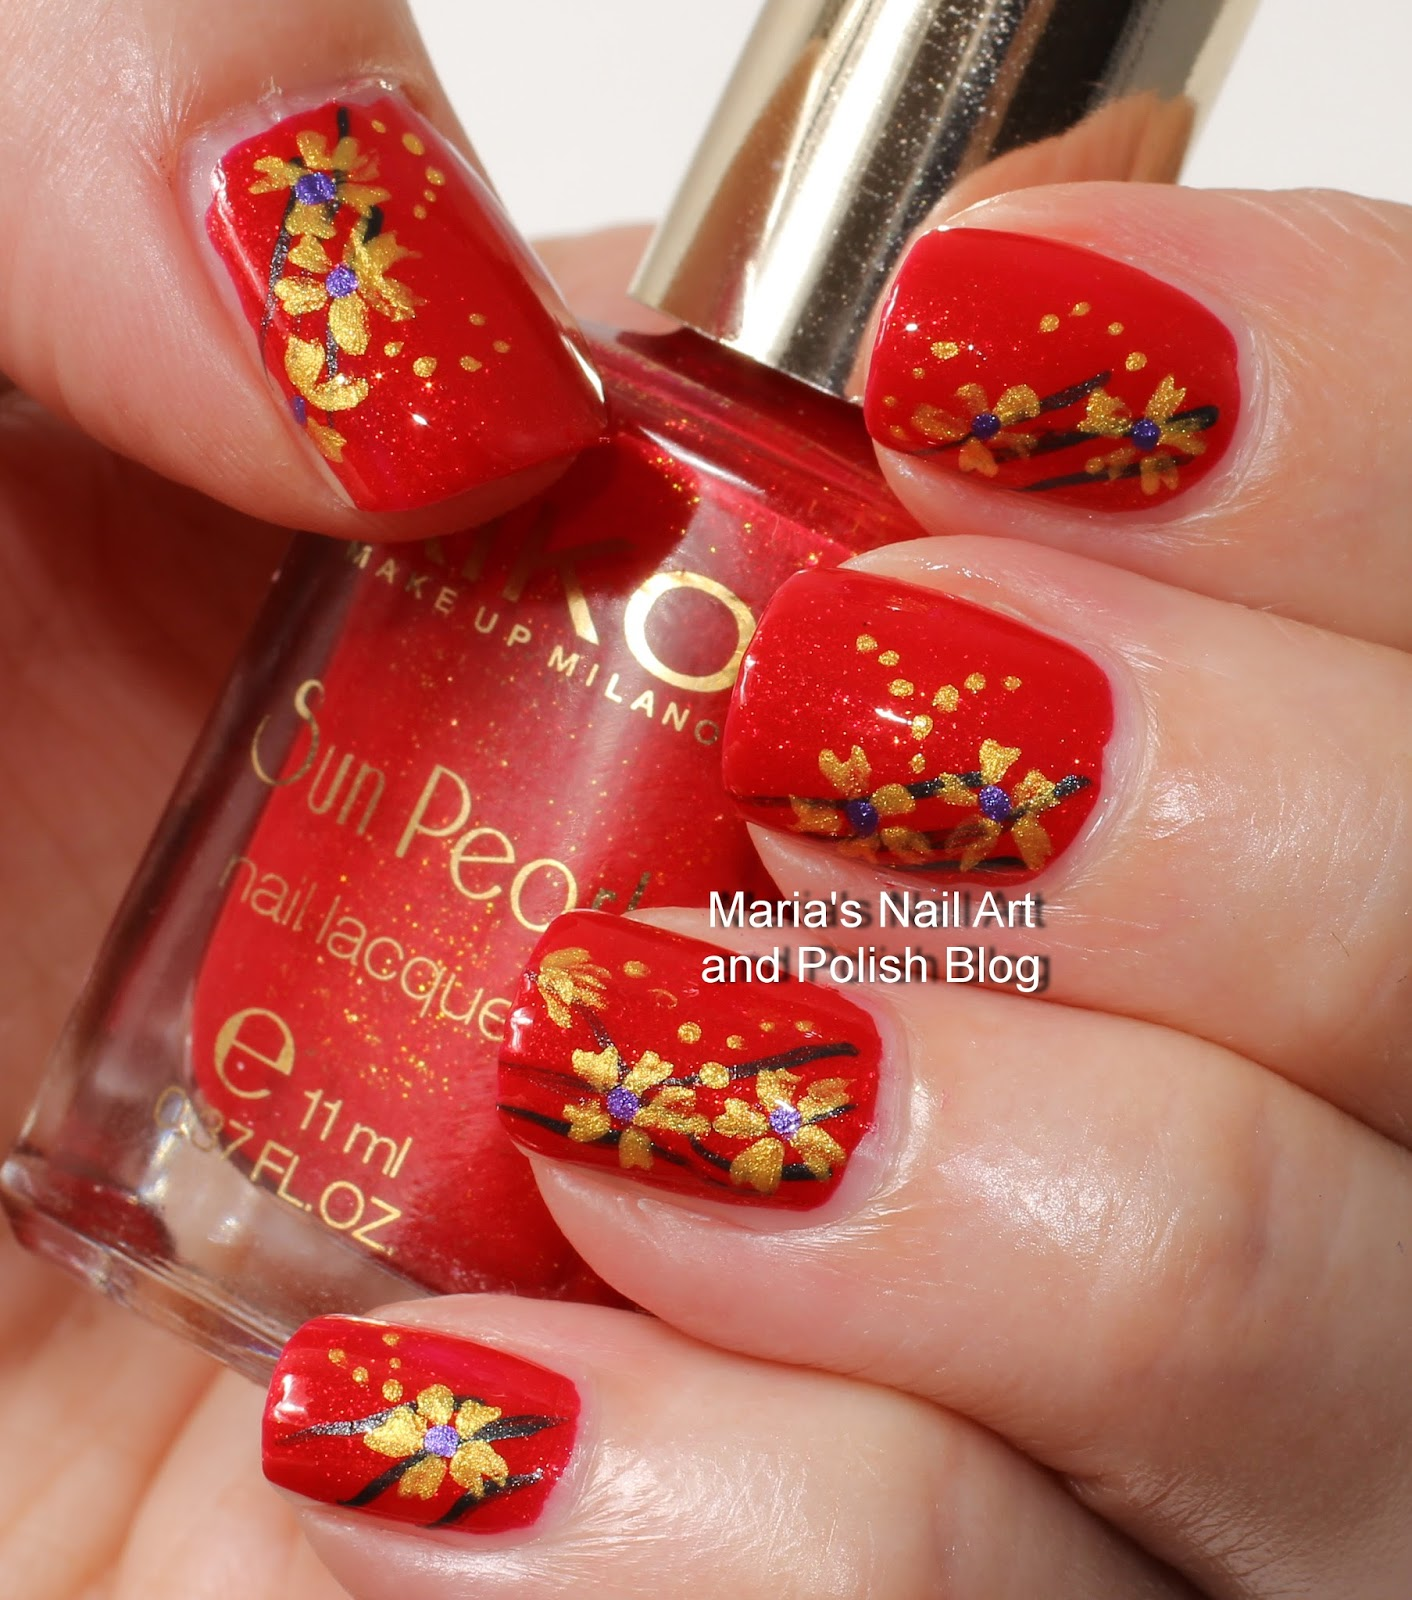 Marias Nail Art And Polish Blog Flushed With Stripes And: Marias Nail Art And Polish Blog: Golden Flowers On Sun Pearls